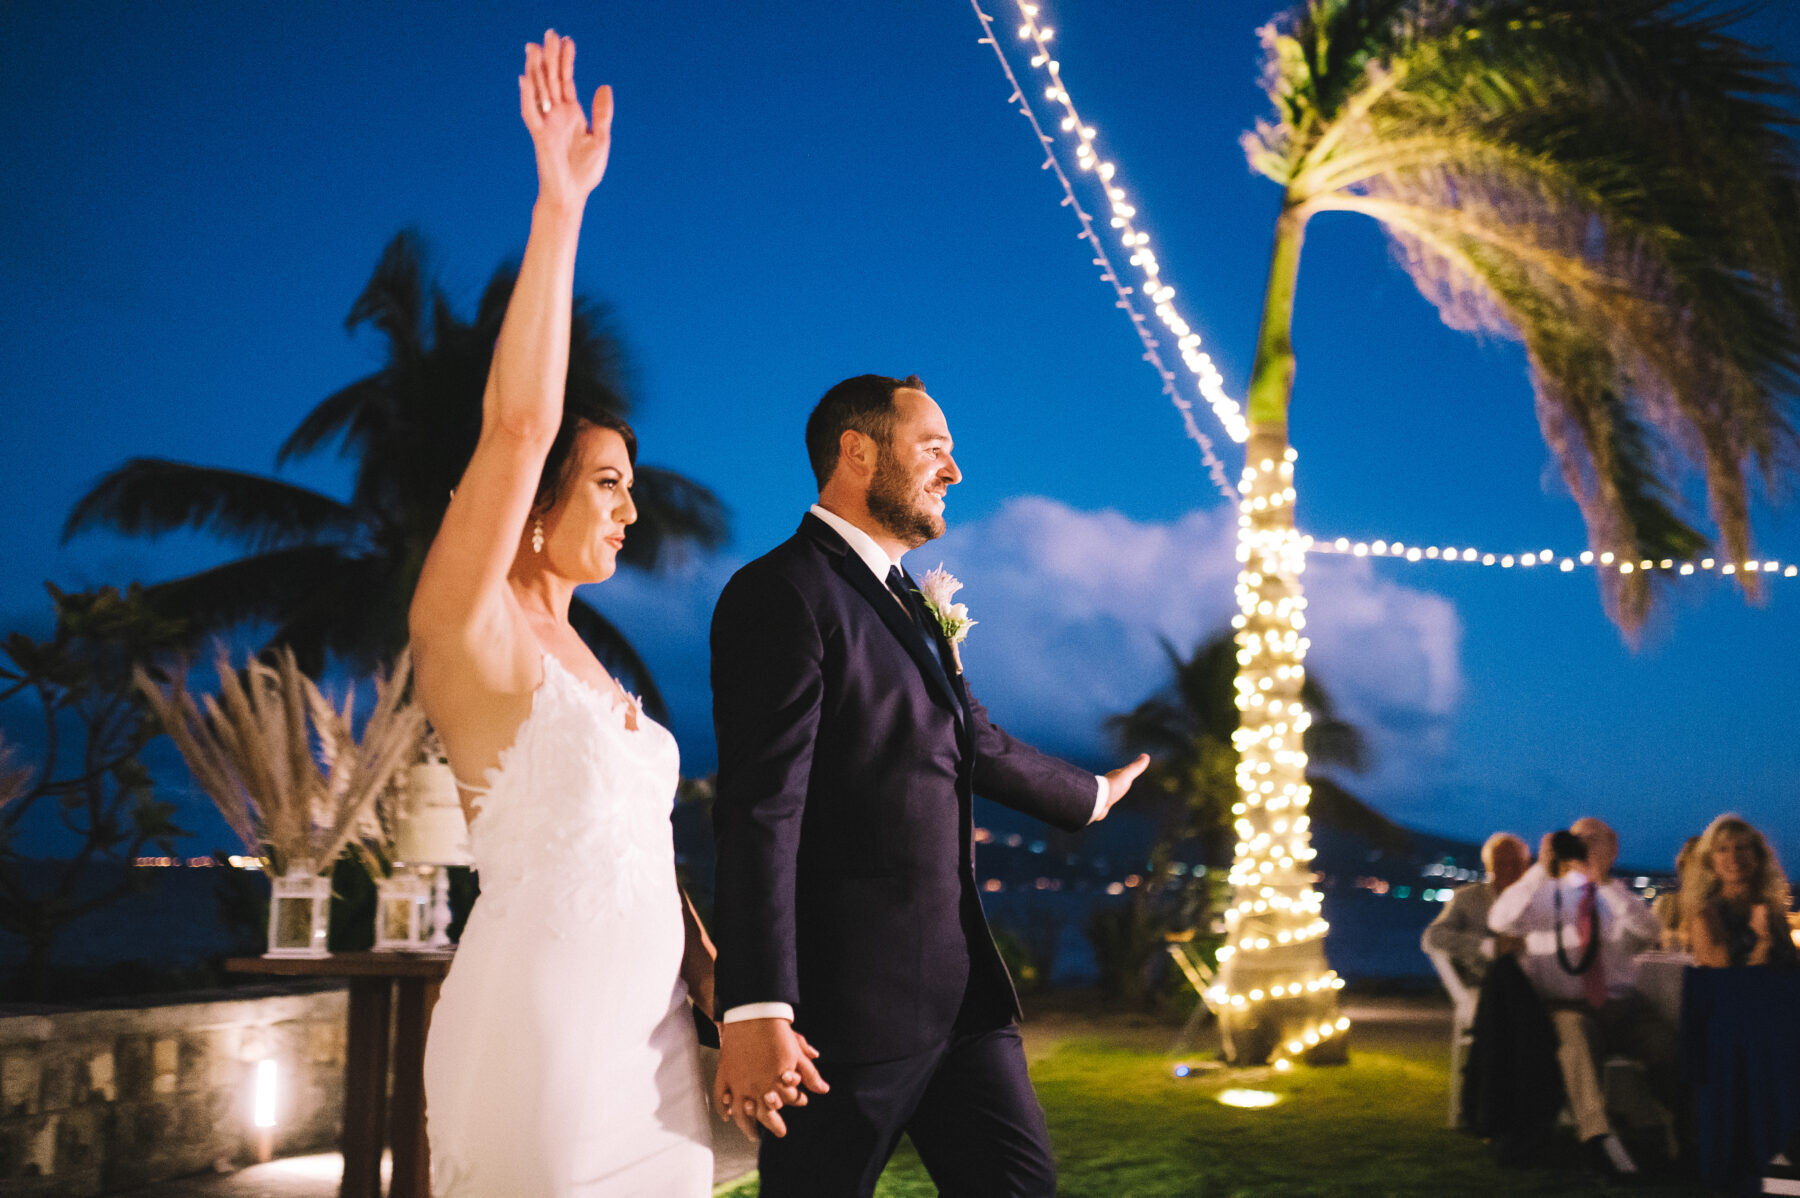 Grand wedding entrance: Intimate Caribbean Wedding by Details Nashville